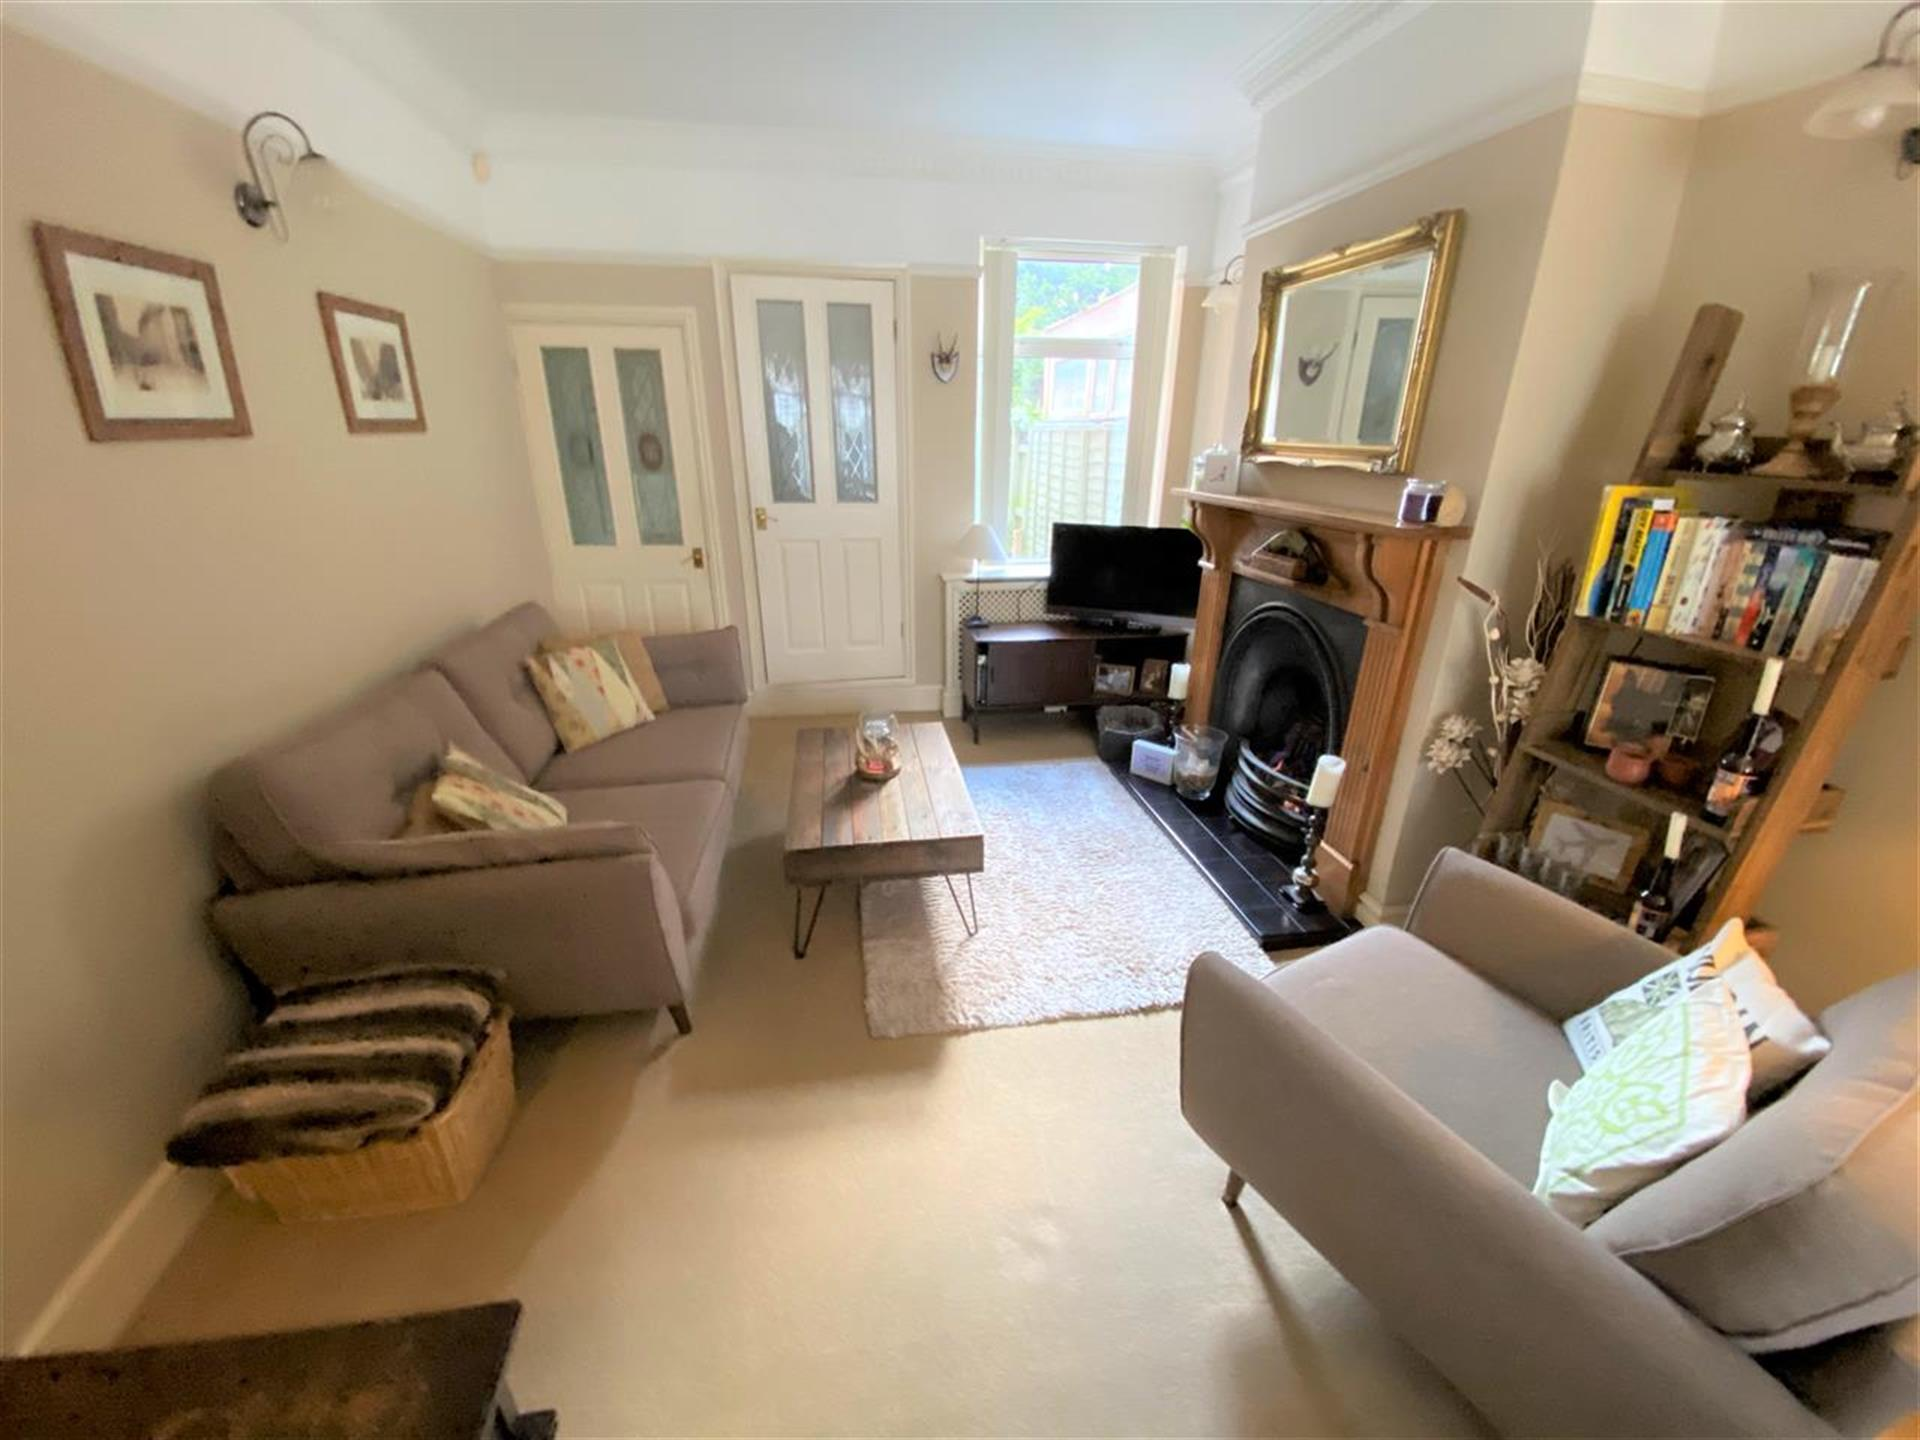 3 Bedroom Terraced House For Sale - Lounge Area